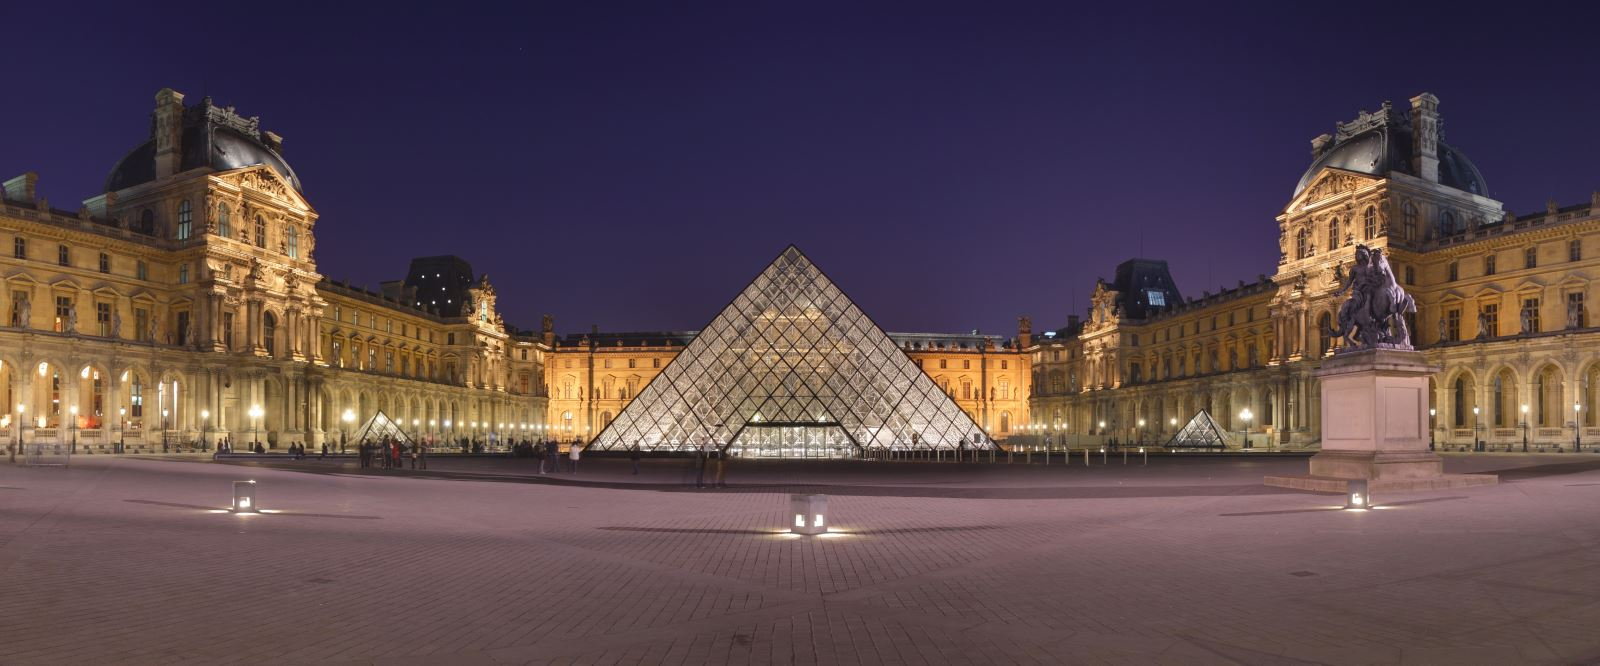 Louvre Museum Room Suggestion